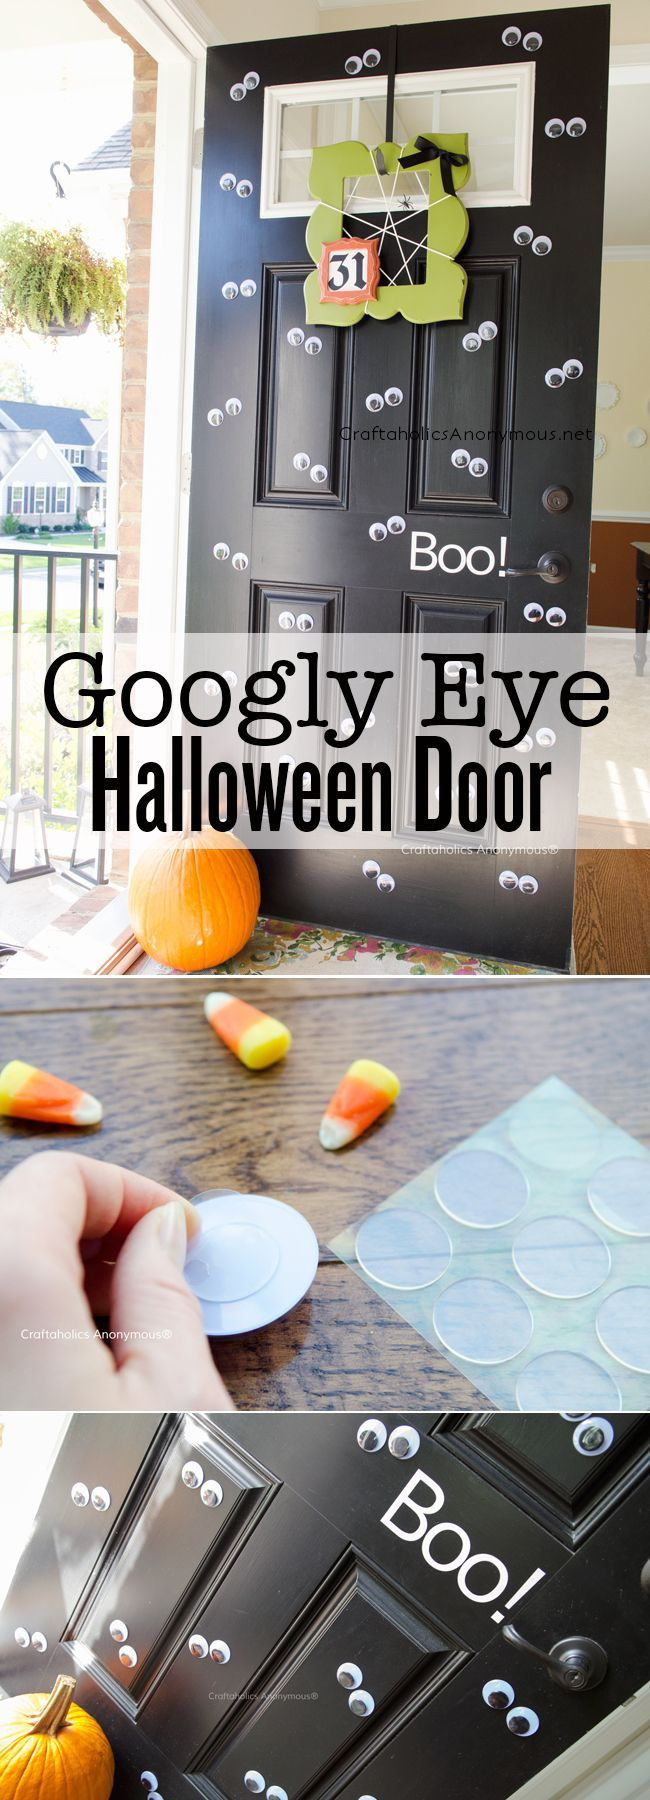 Googly Eye Halloween Door. Easy last minute Halloween decor for your door- just add a bunch of Googly eyes! Click for tips on how to reuse the wiggle eyes year after year.